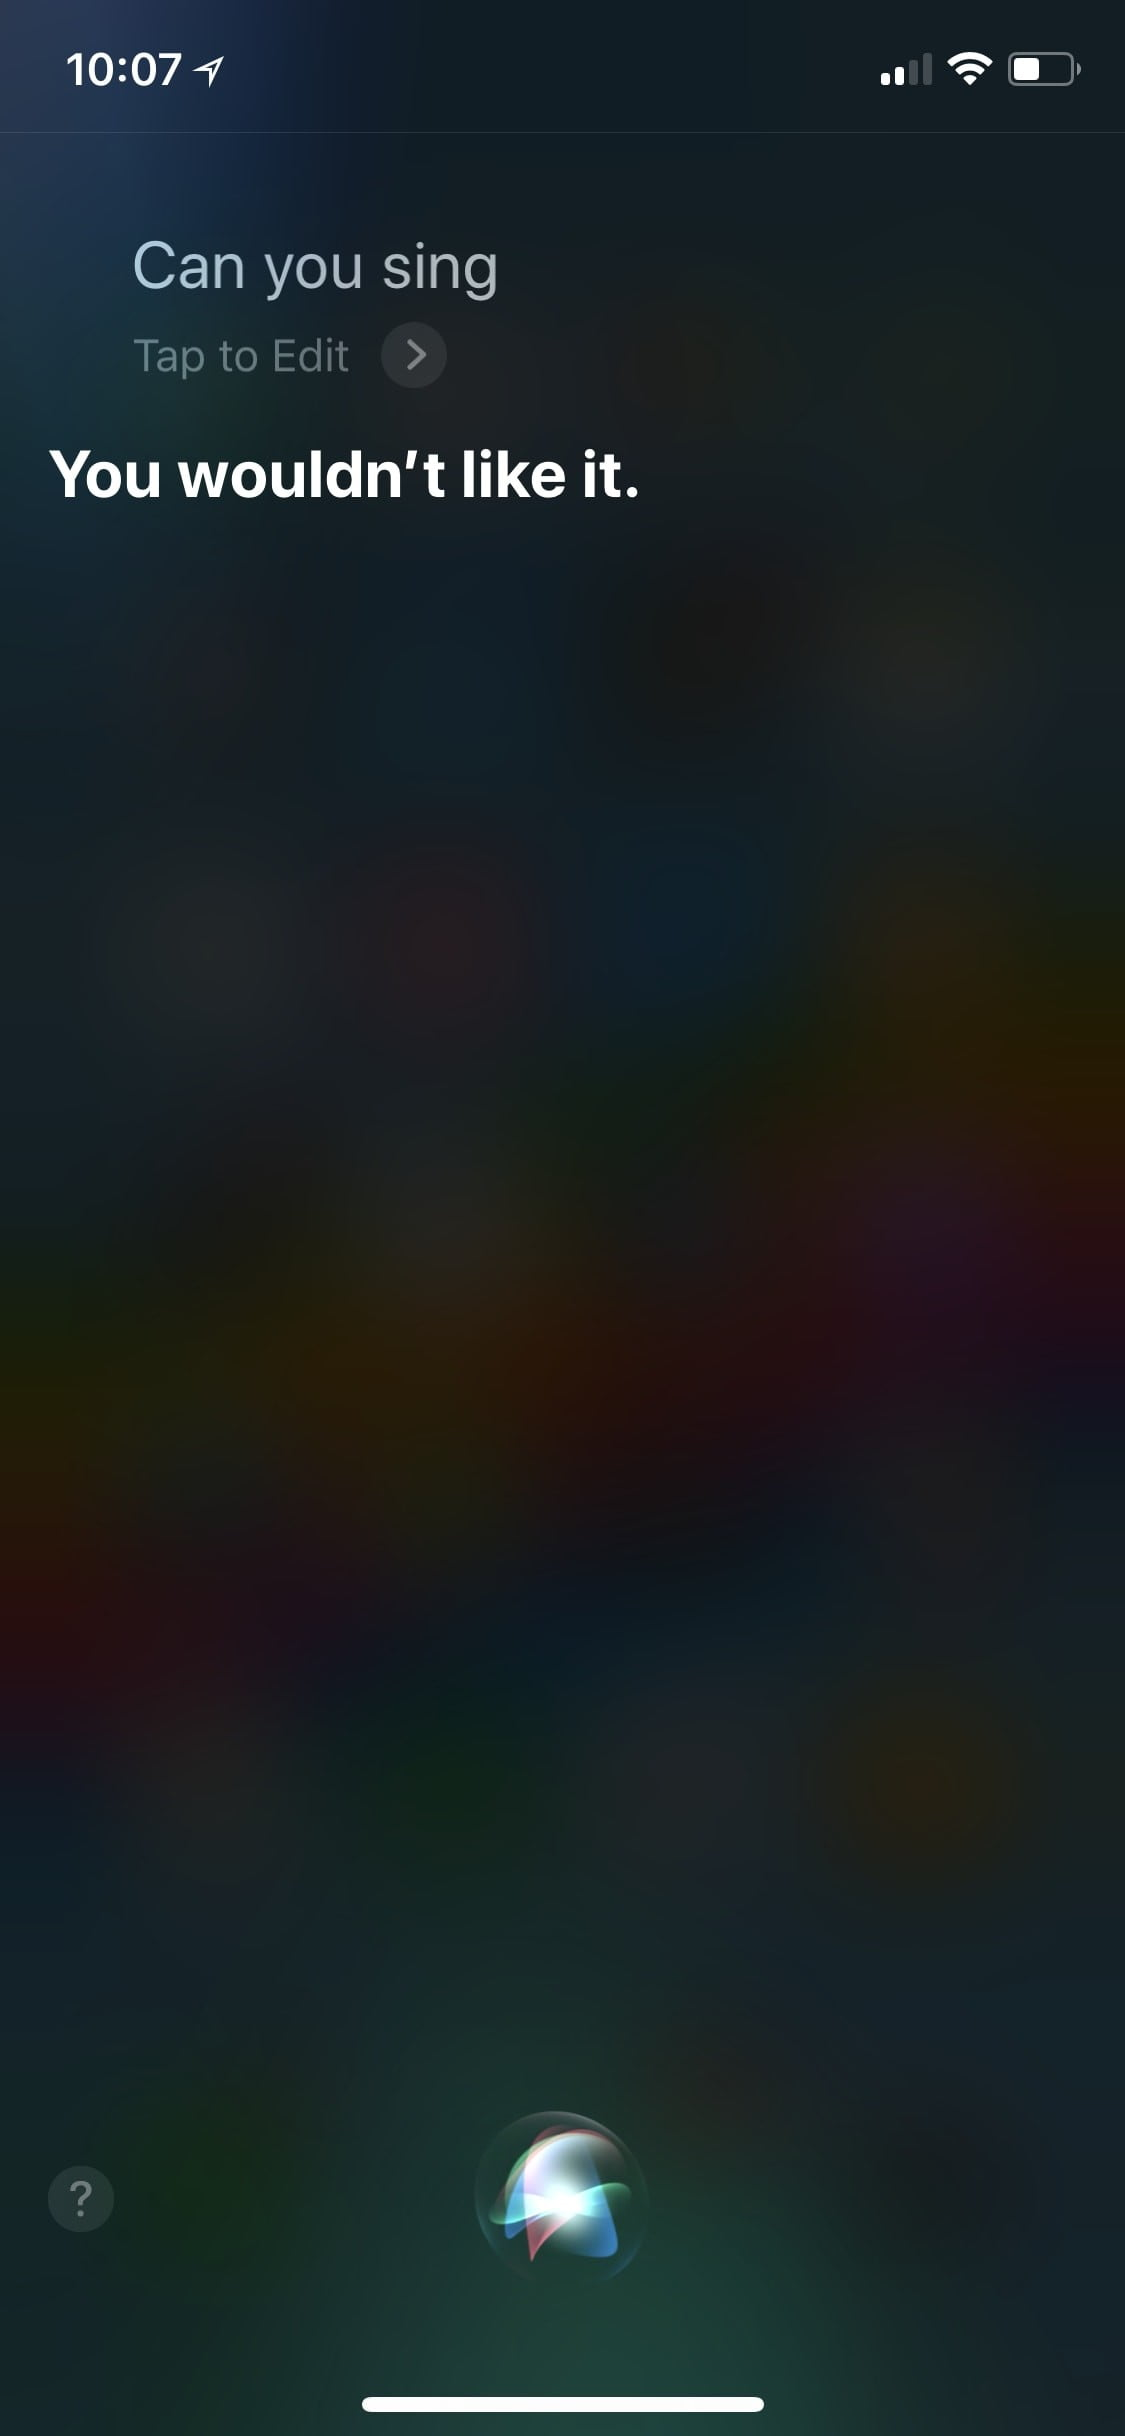 Funny Questions To Ask Siri Sing 2